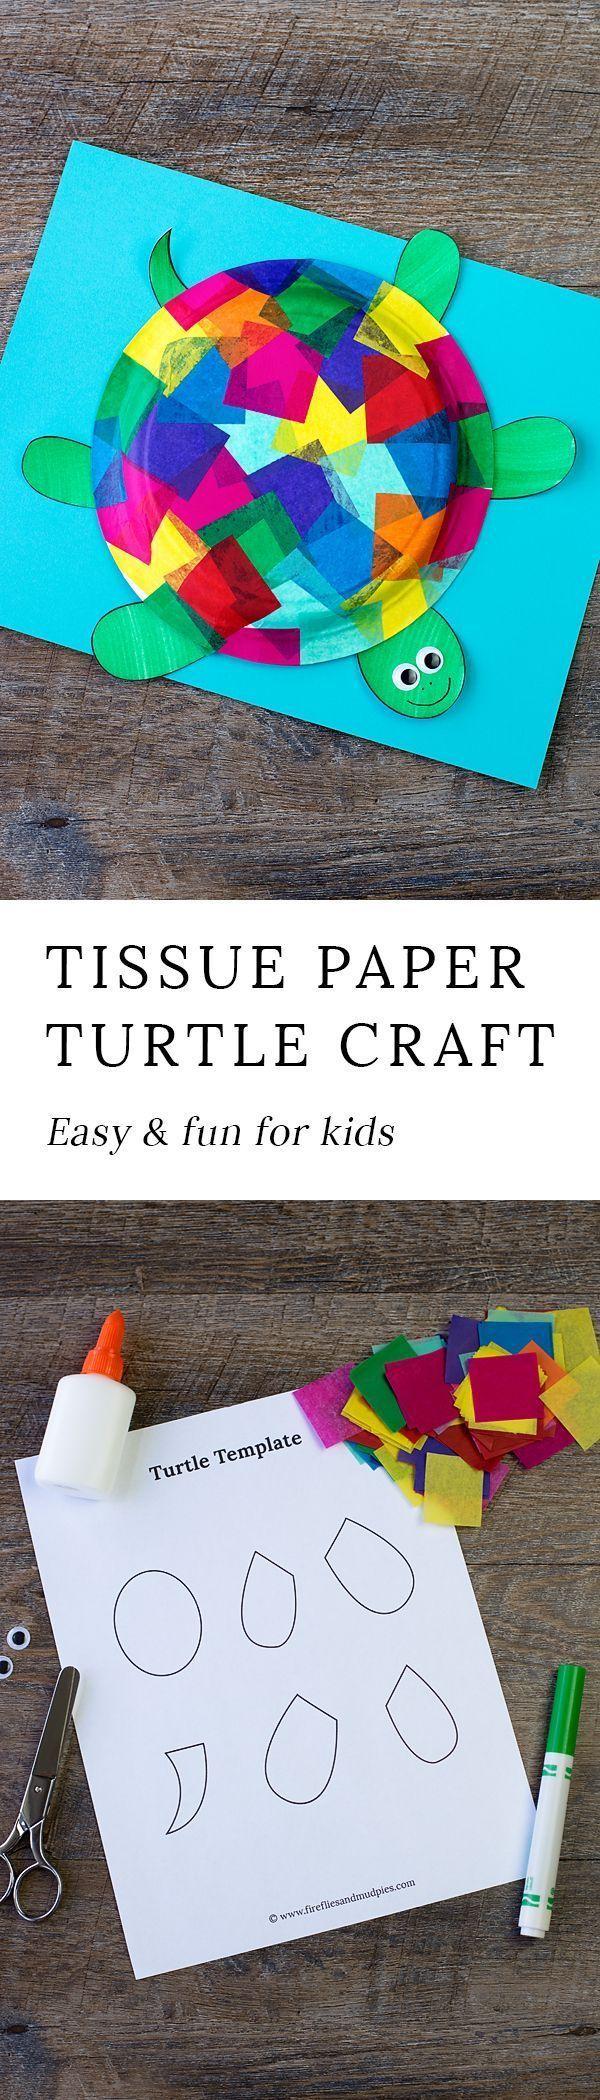 Home daycare design-ideen this easy and fun tissue paper and paper plate turtle craft includes